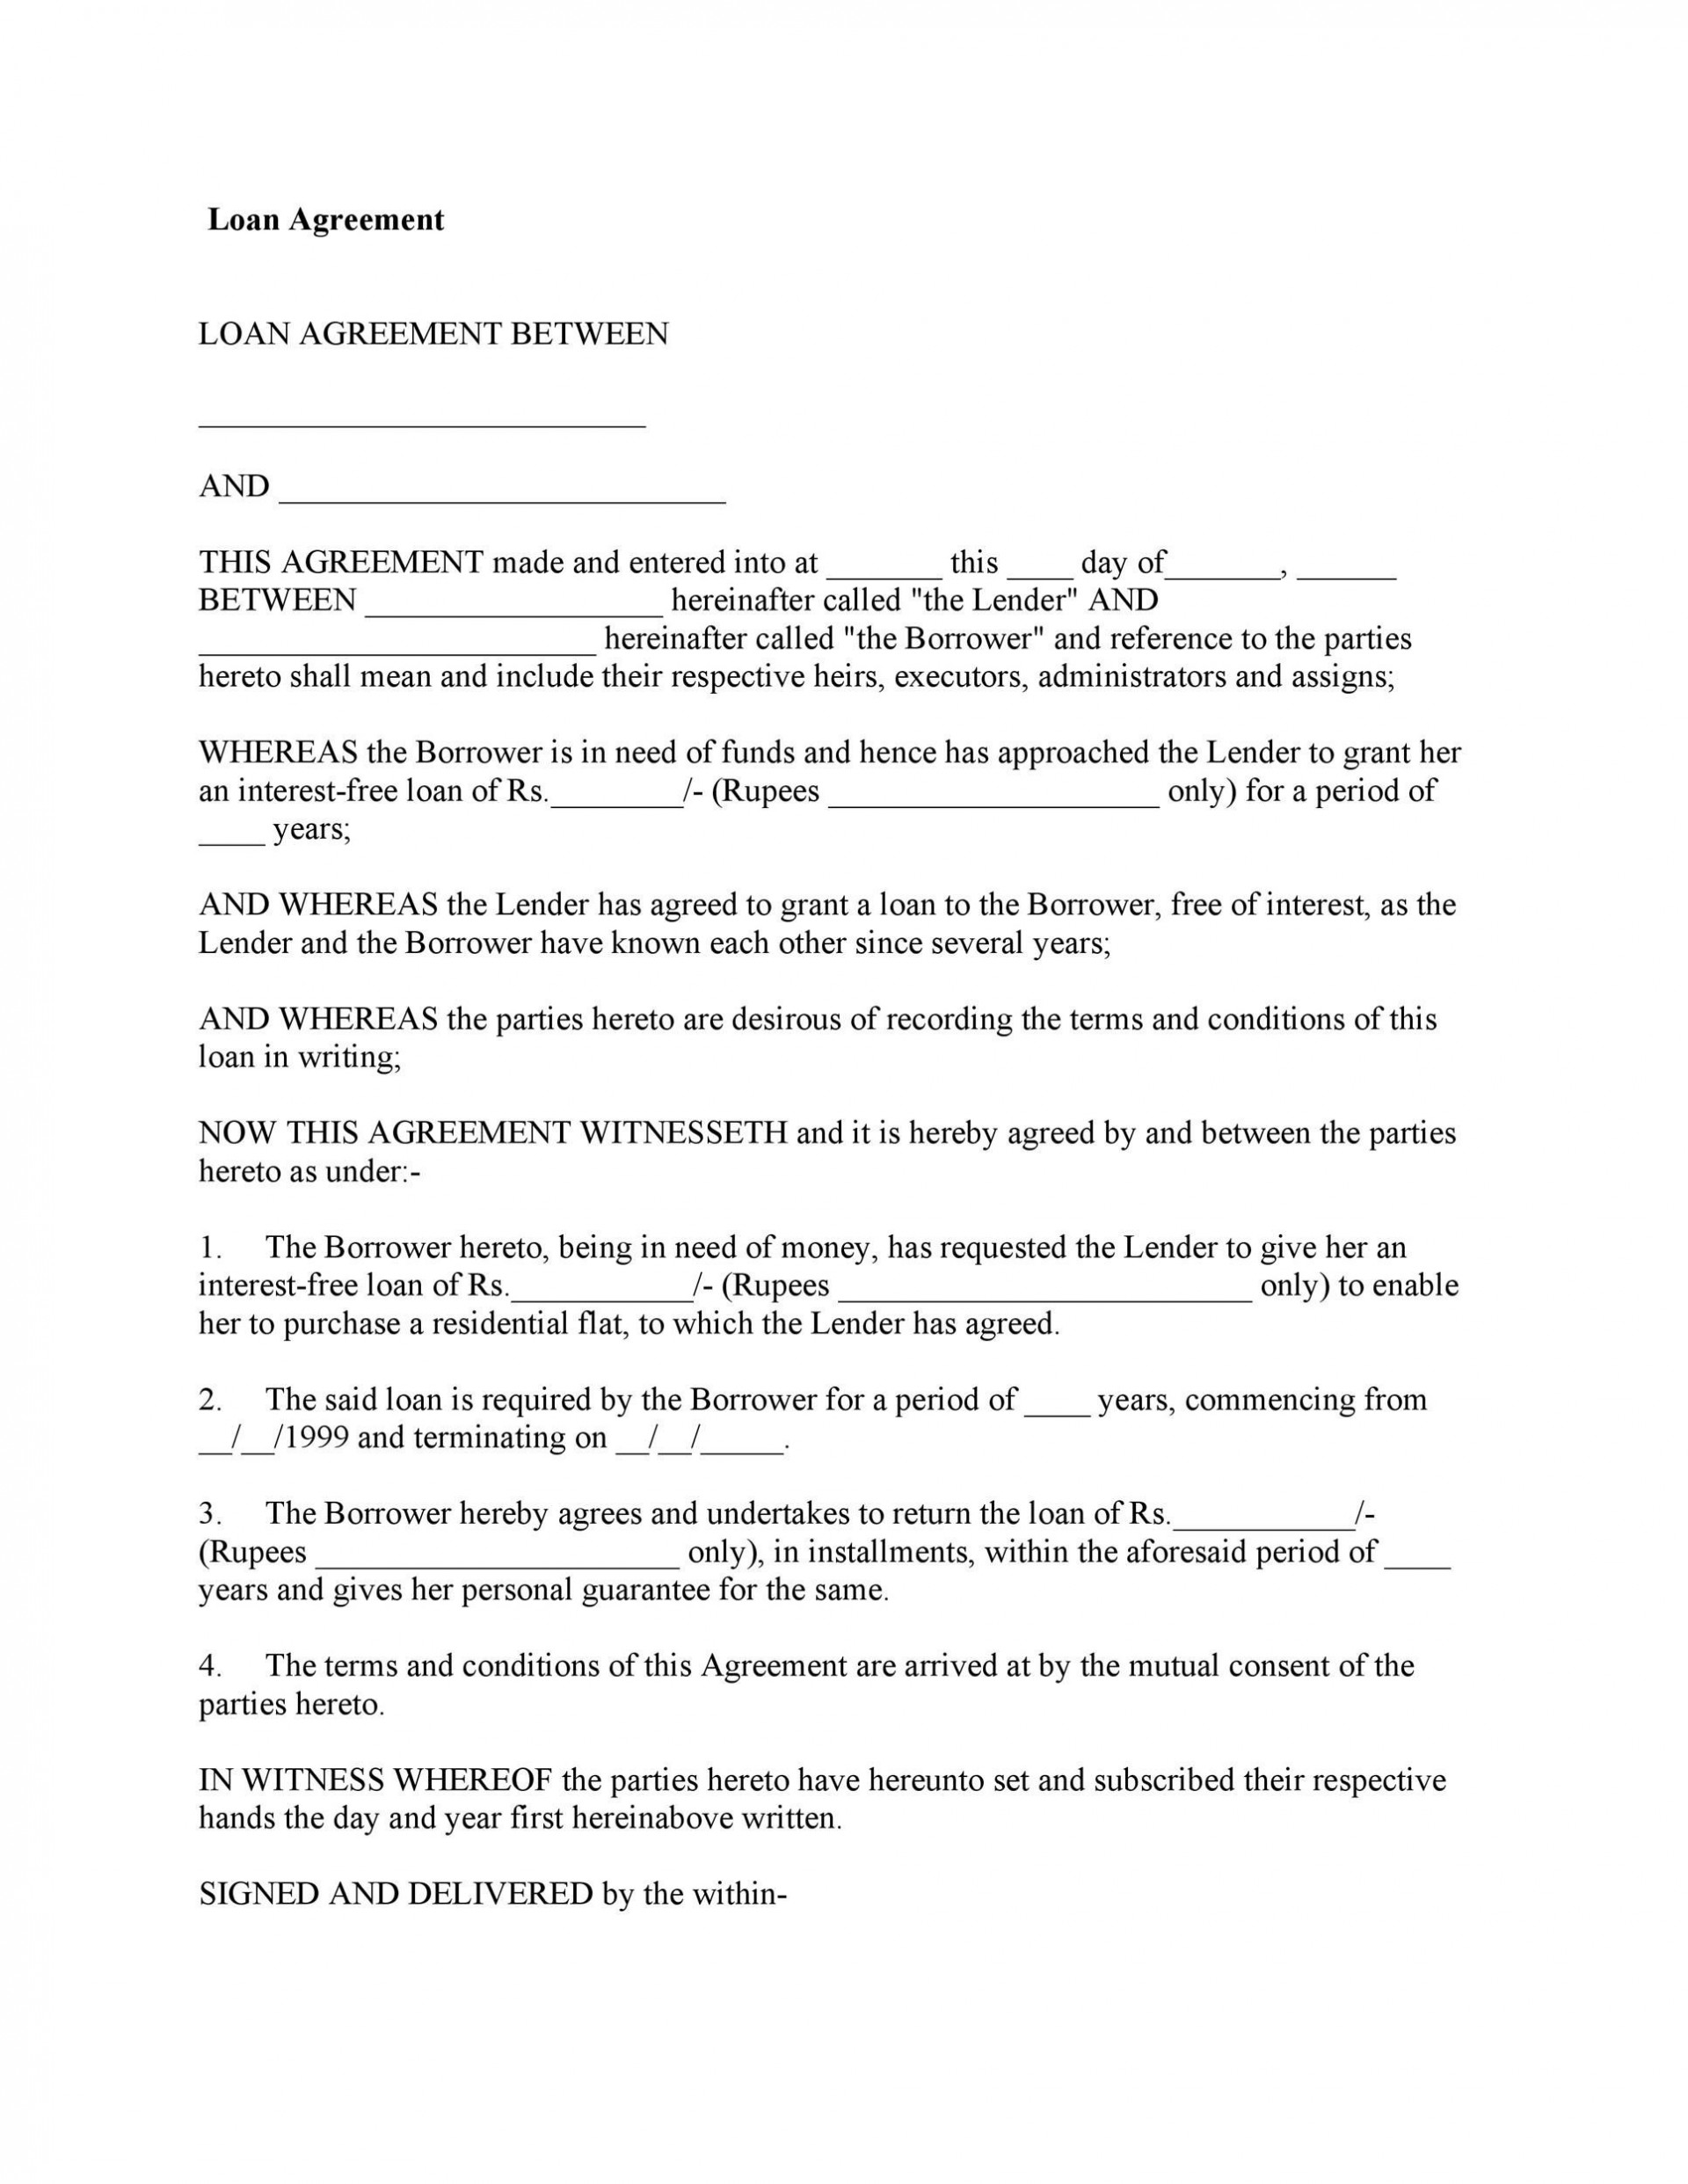 009 Fascinating Family Loan Agreement Template Image  Free Uk Friend And Simple Australia1920